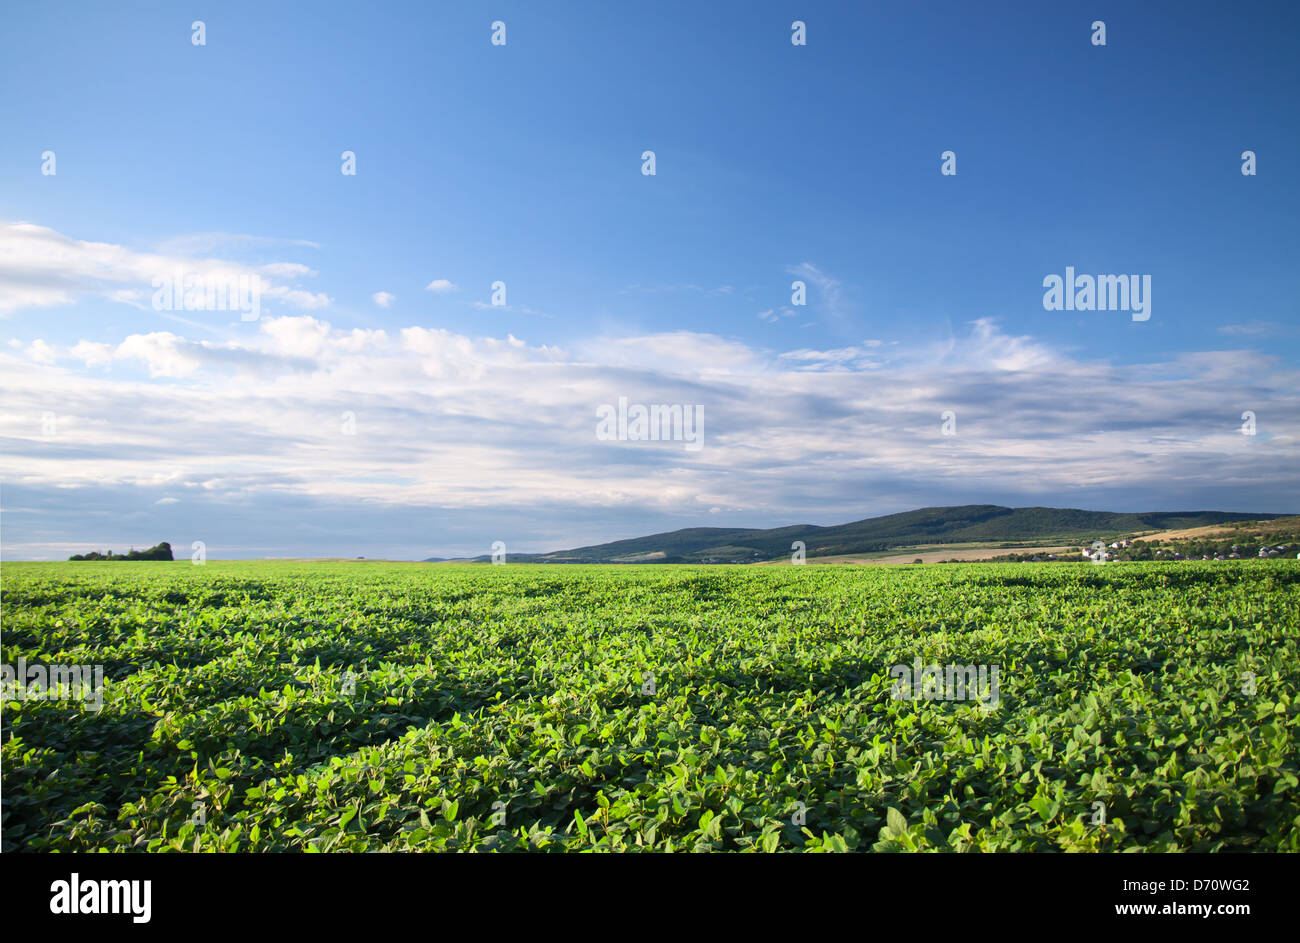 Green cultivated soy field in late summer - Stock Image